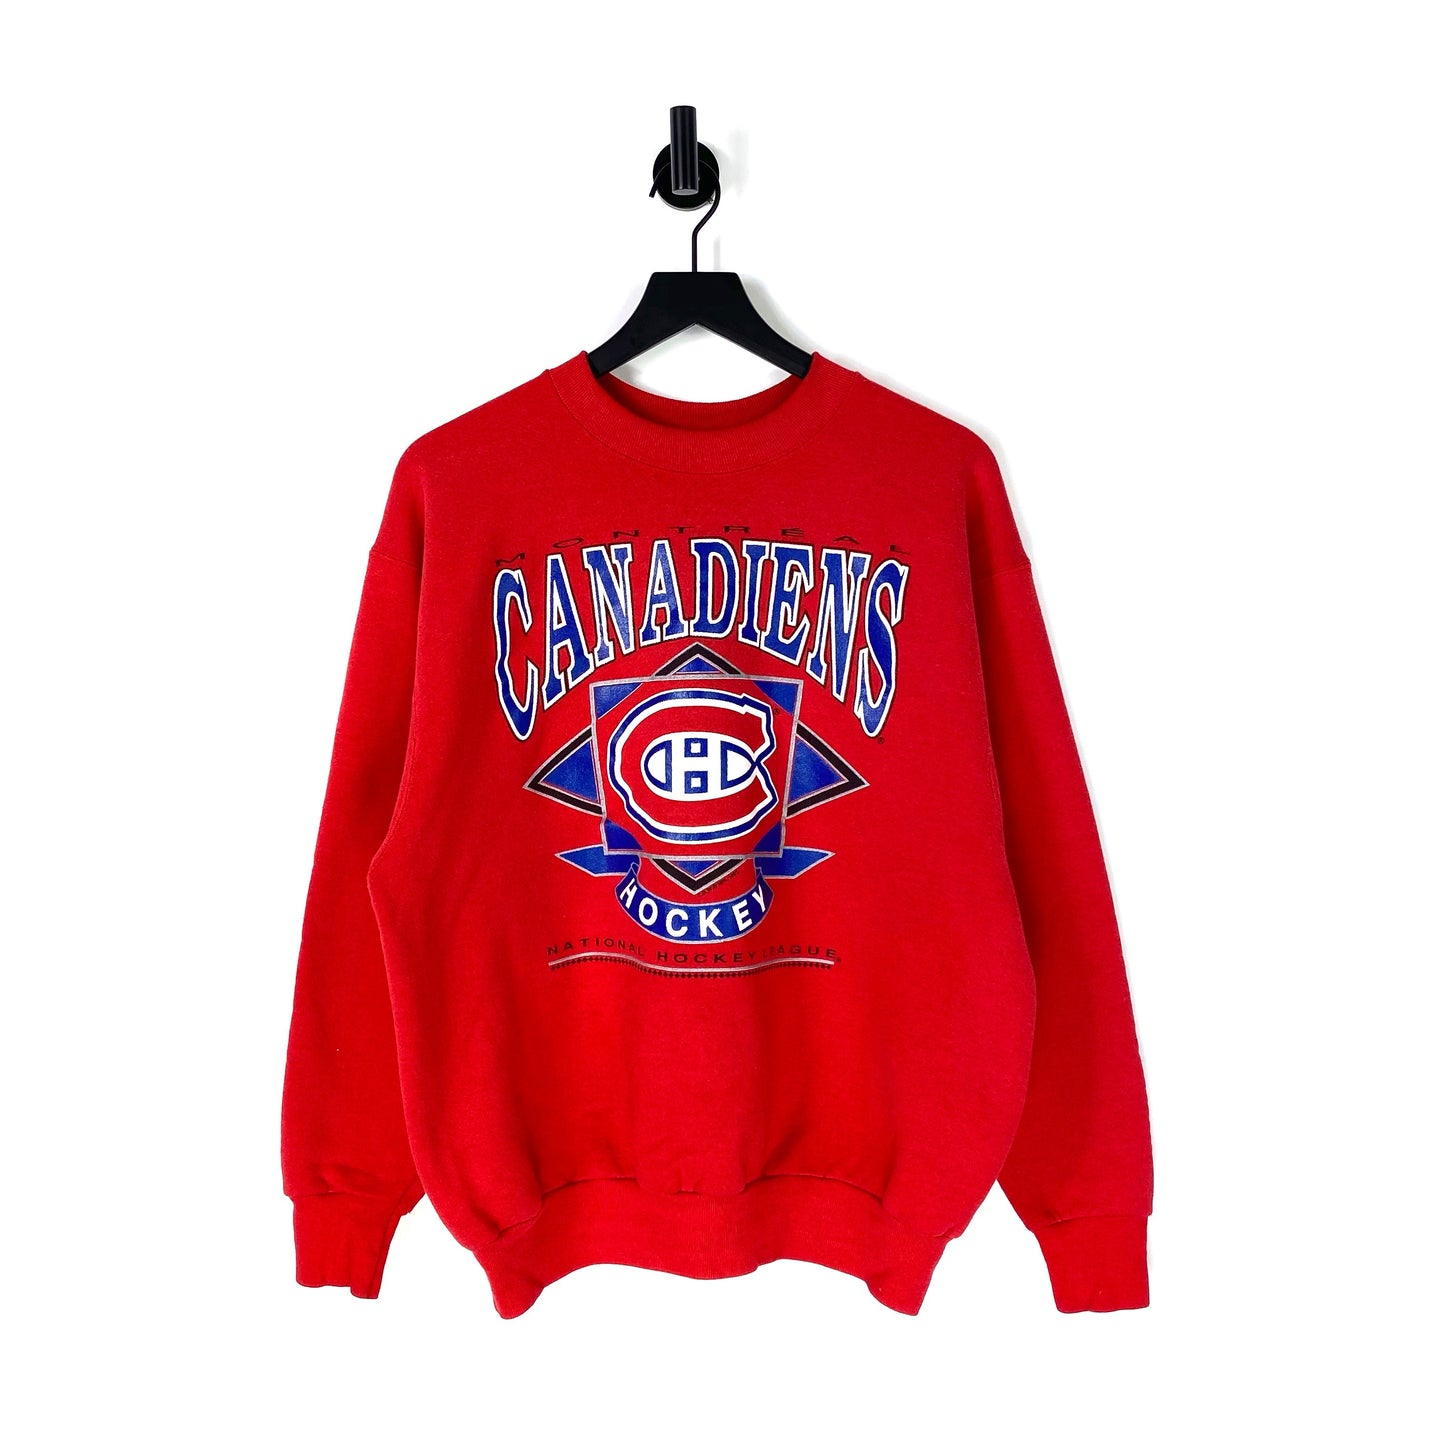 90s Canadiens Montreal Hockey Sweatshirt - L